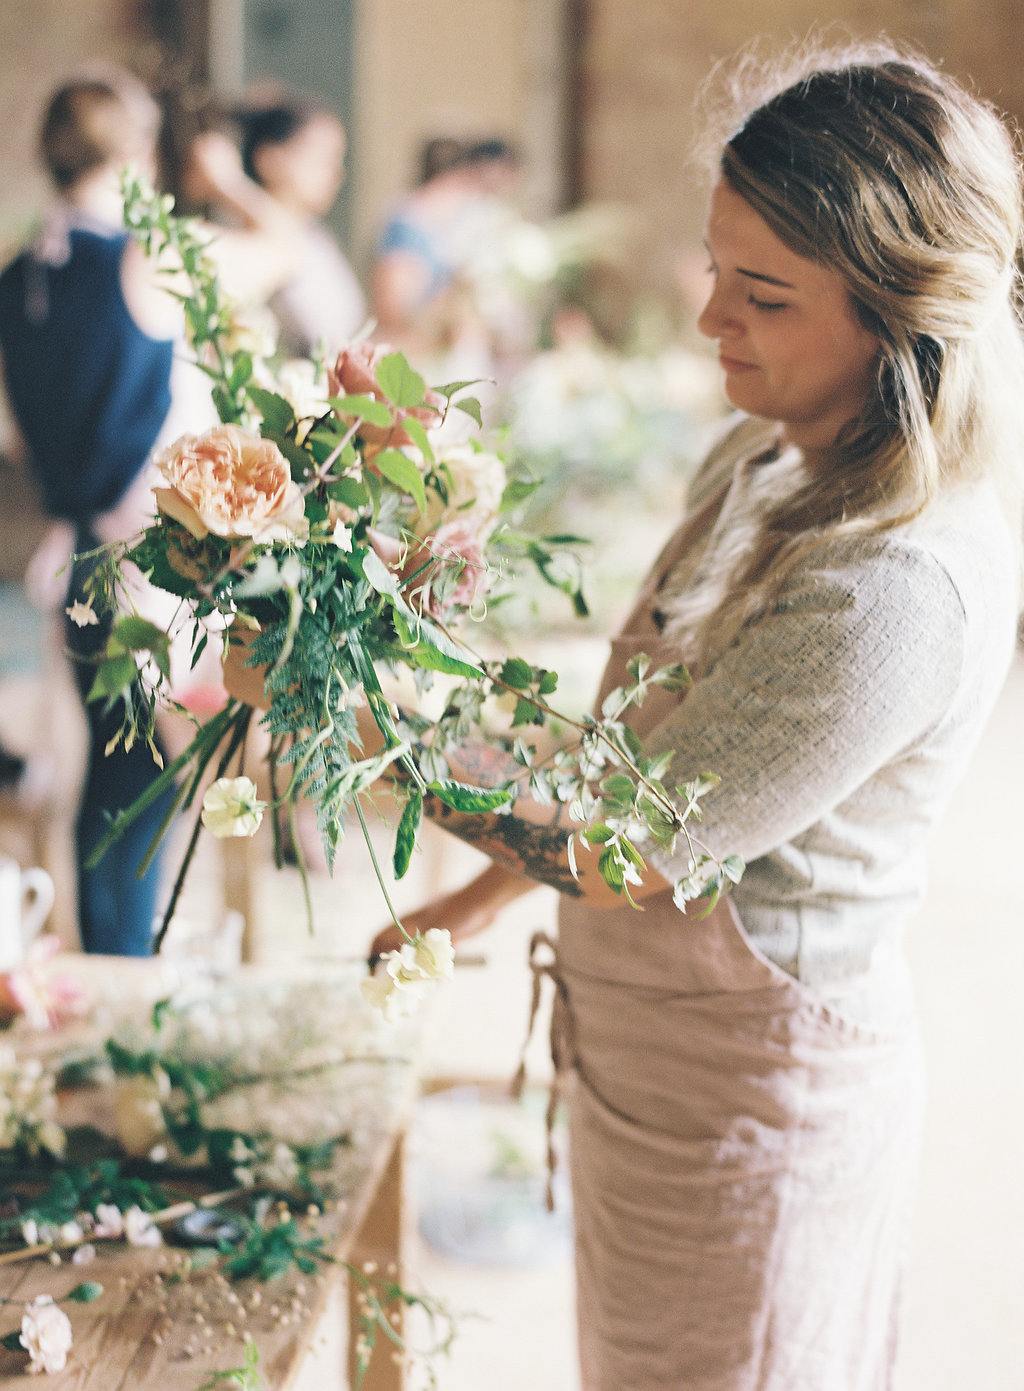 Litha Floral Workshop and Buttonhole Tutorial on cottagehill.co46.jpg